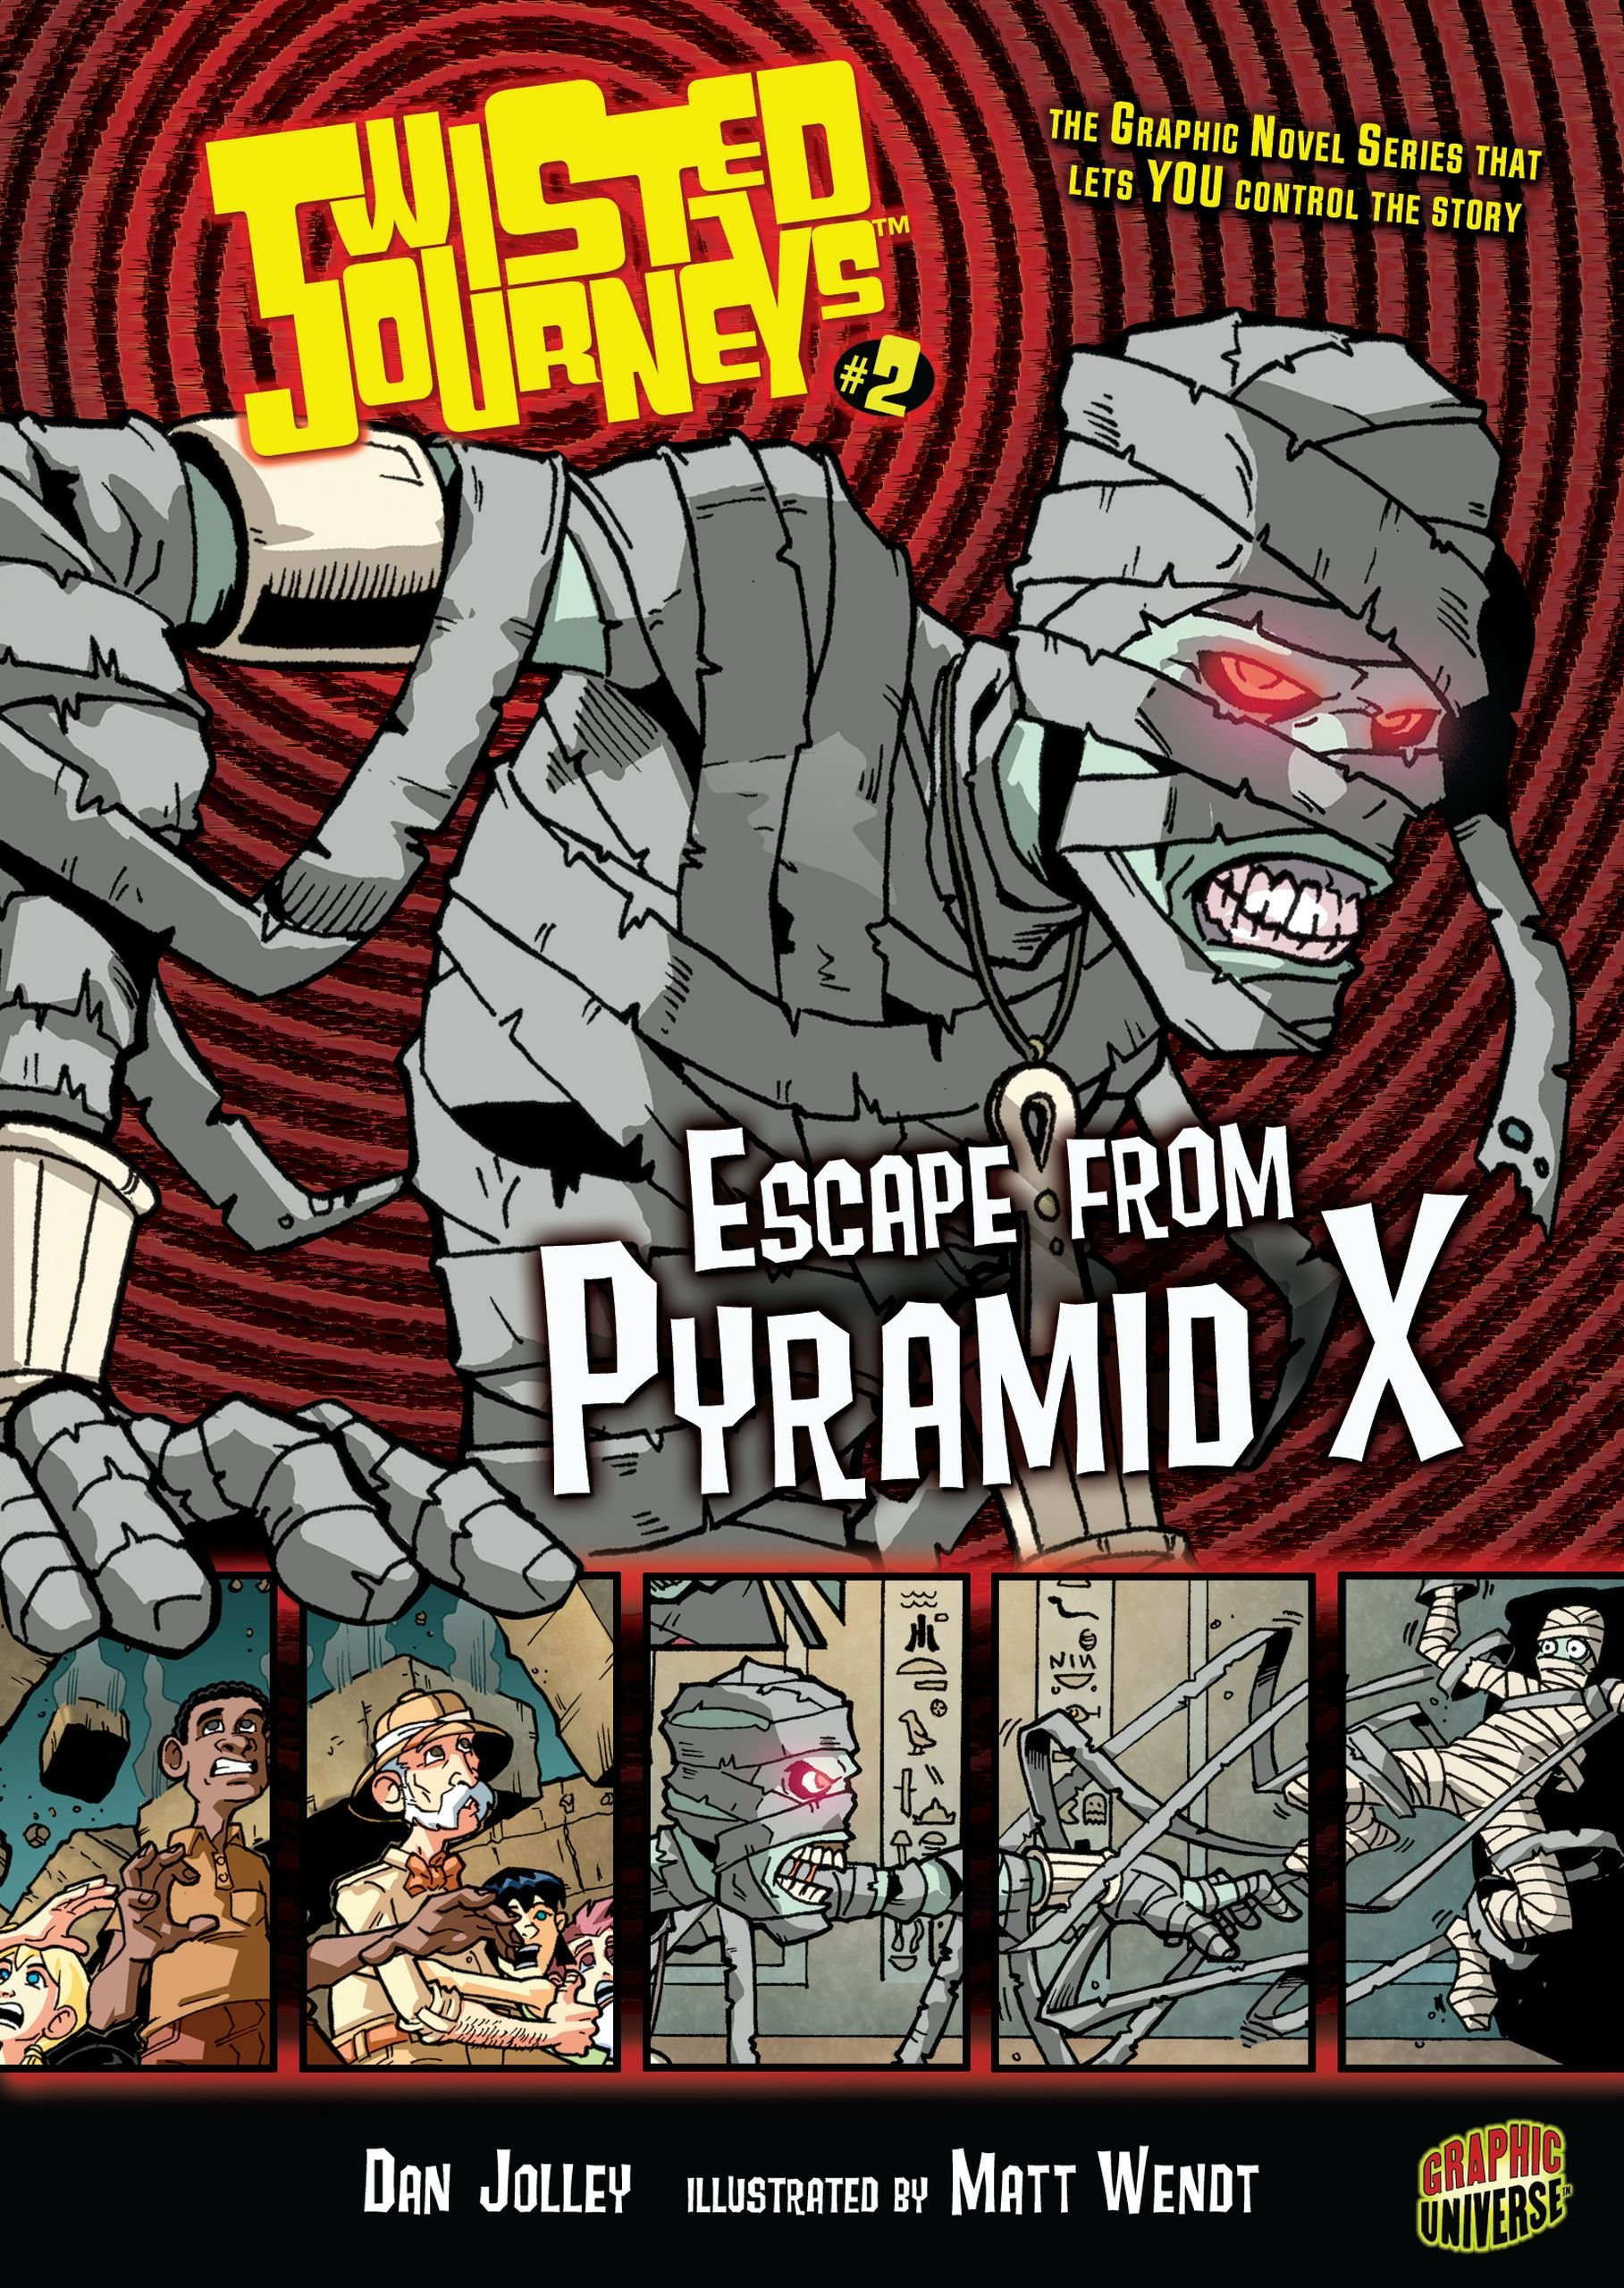 Read Online Escape from Pyramid X (Twisted Journeys) PDF